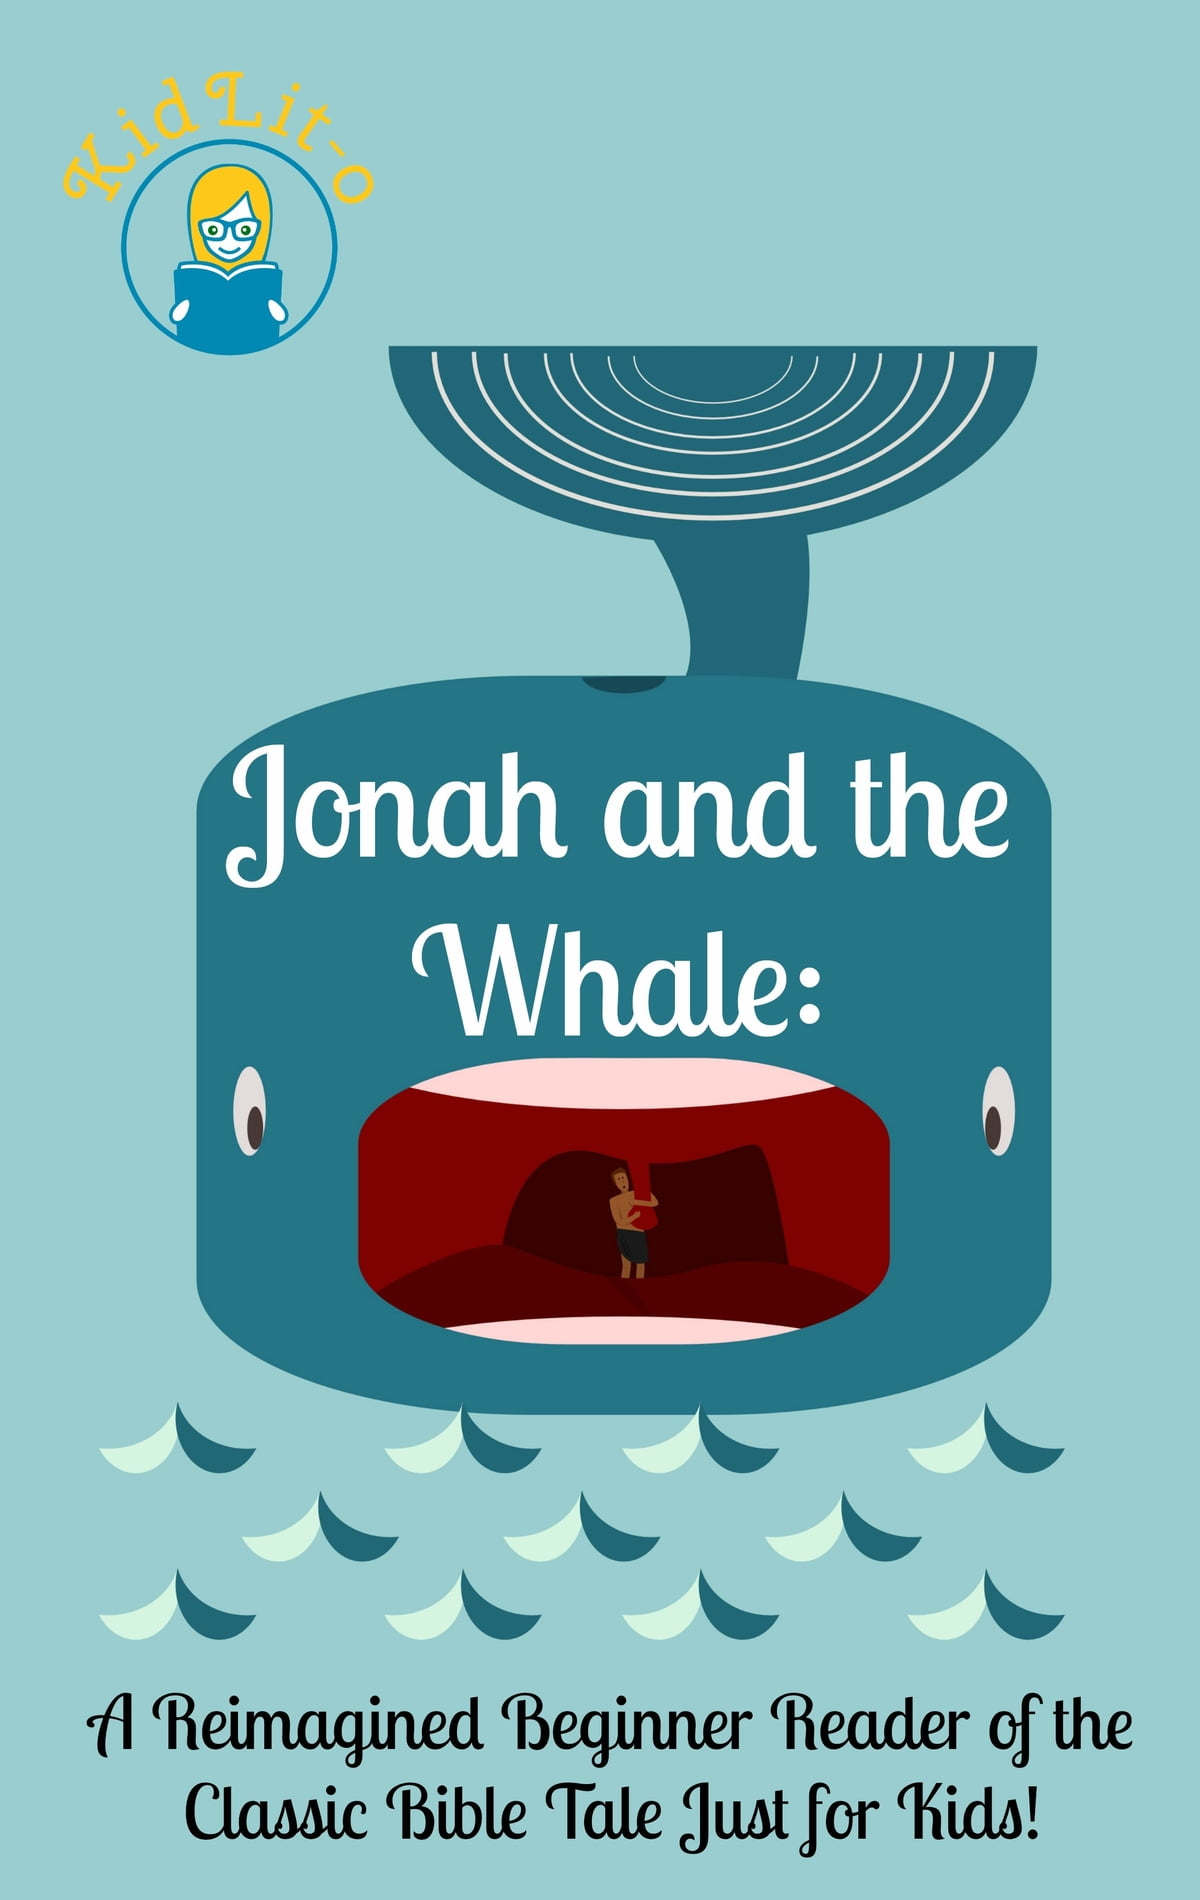 Jonah and the Whale: A Reimagined Beginner Reader of the Classic Bible Tale  Just for Kids! ebook by James Kyle - Rakuten Kobo